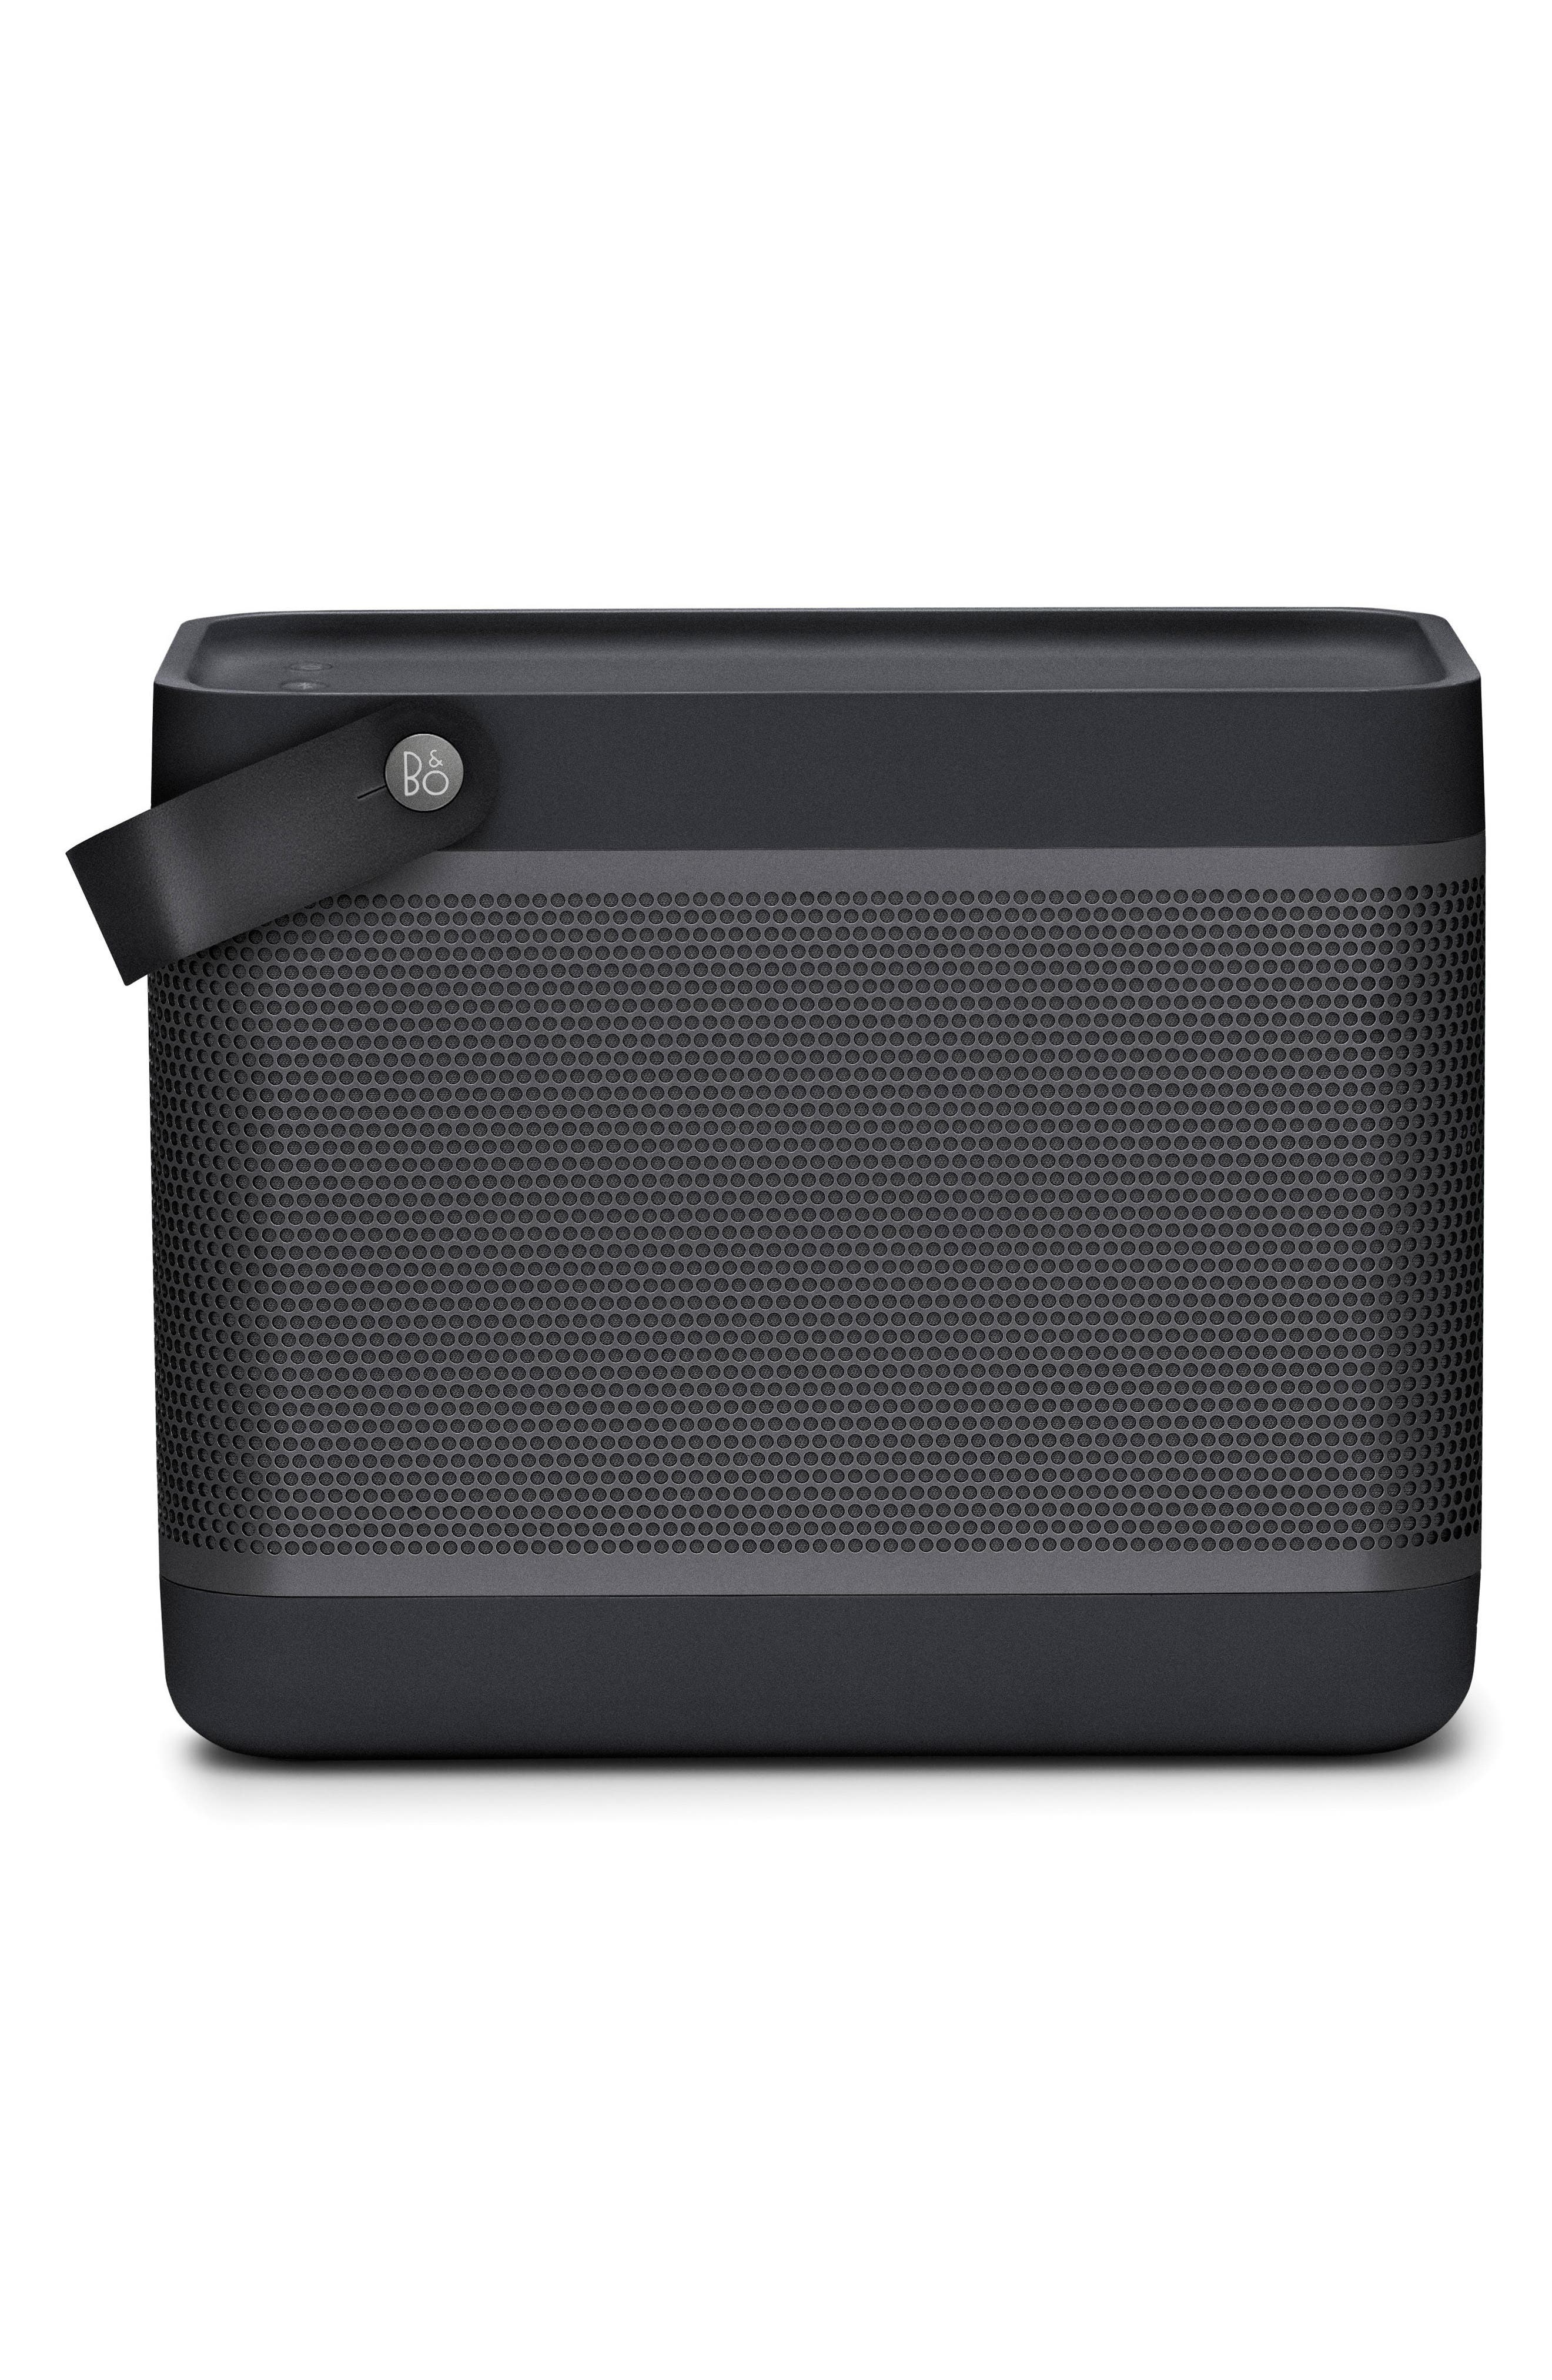 Beolit 17 Portable Bluetooth<sup>®</sup> Speaker,                         Main,                         color, STONE GREY